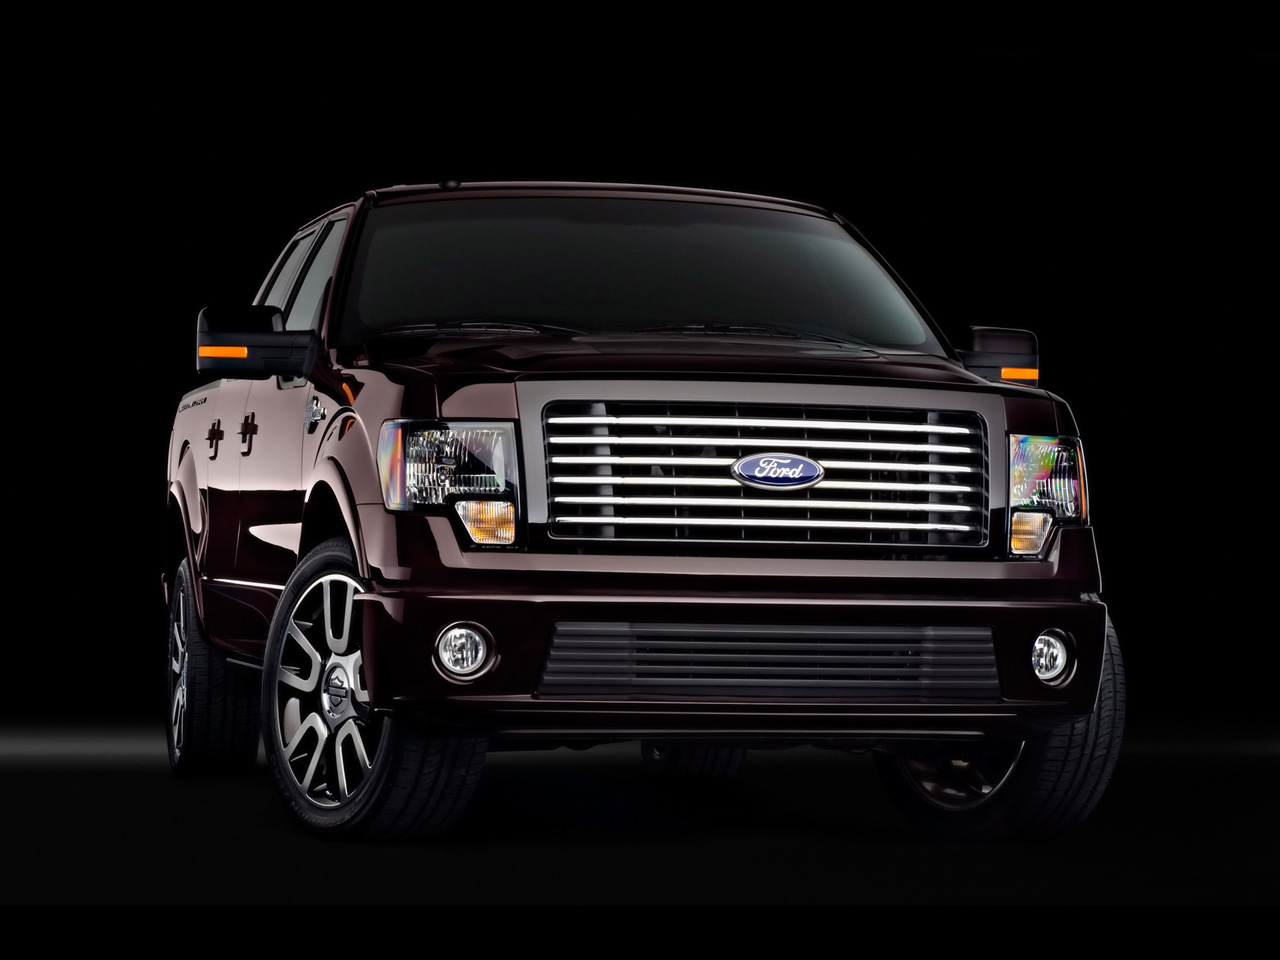 Auto Cars Ford F 150 Harley Davidson 2004